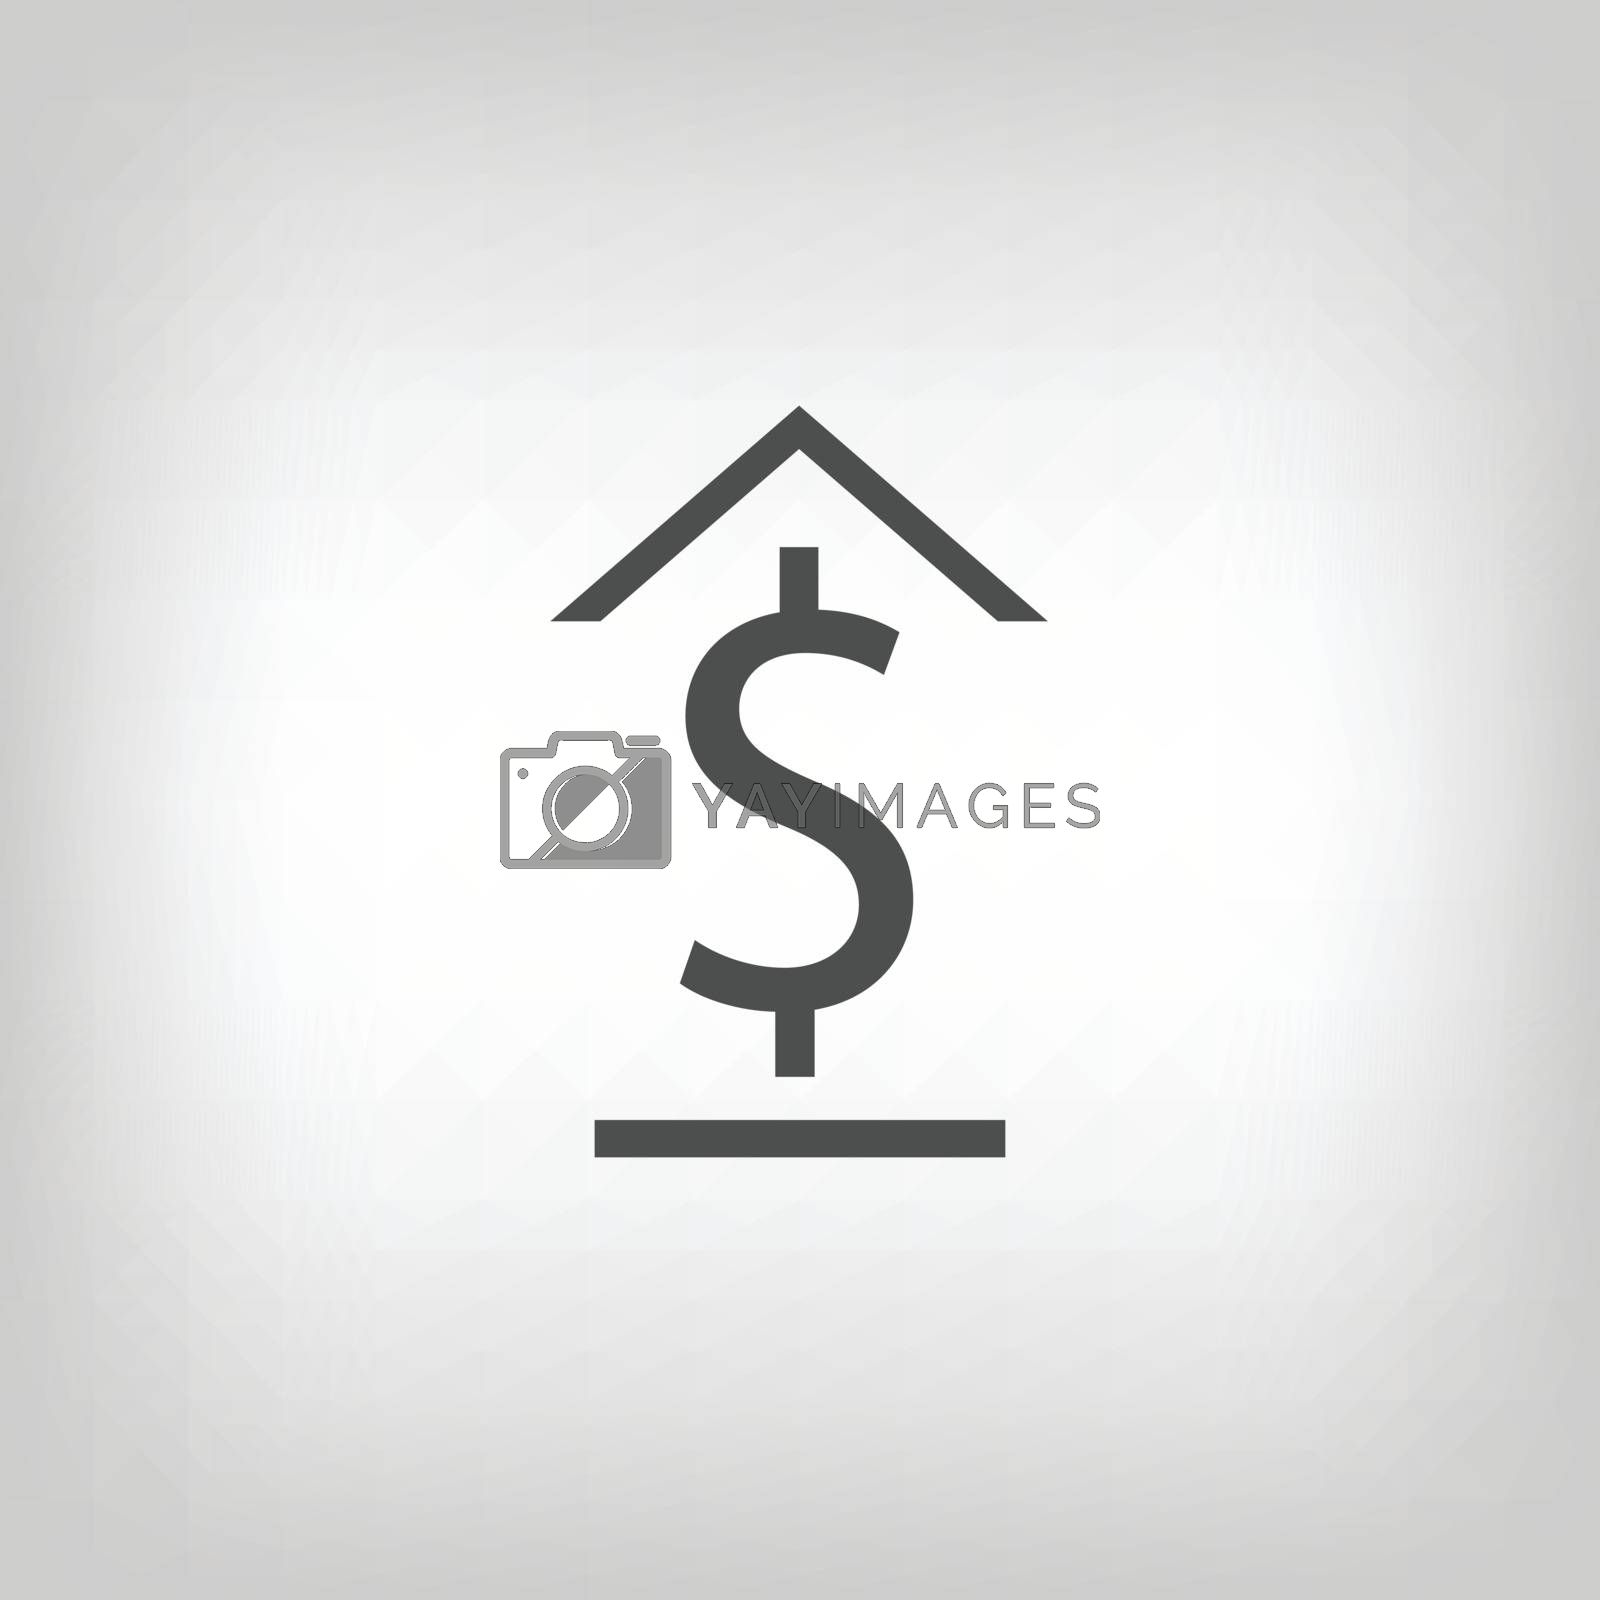 Simple bank icon. Dollar sign with roof and floor